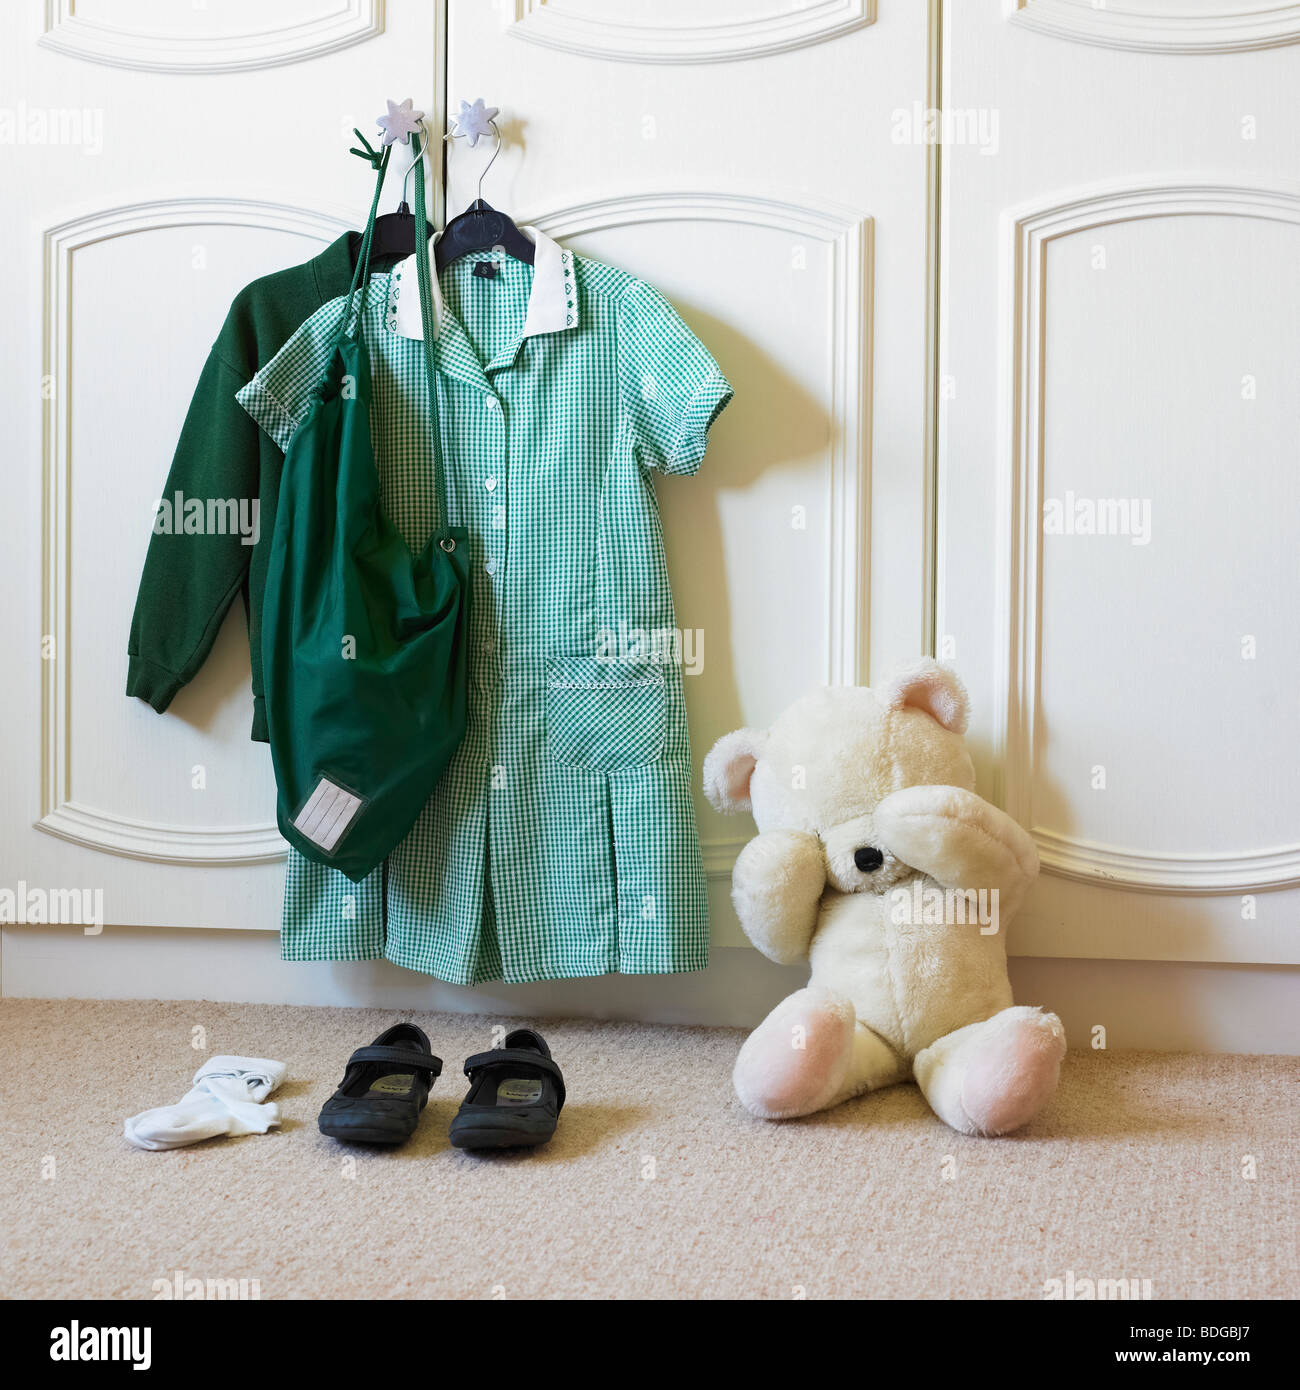 First day of school with upset teddy bear. - Stock Image